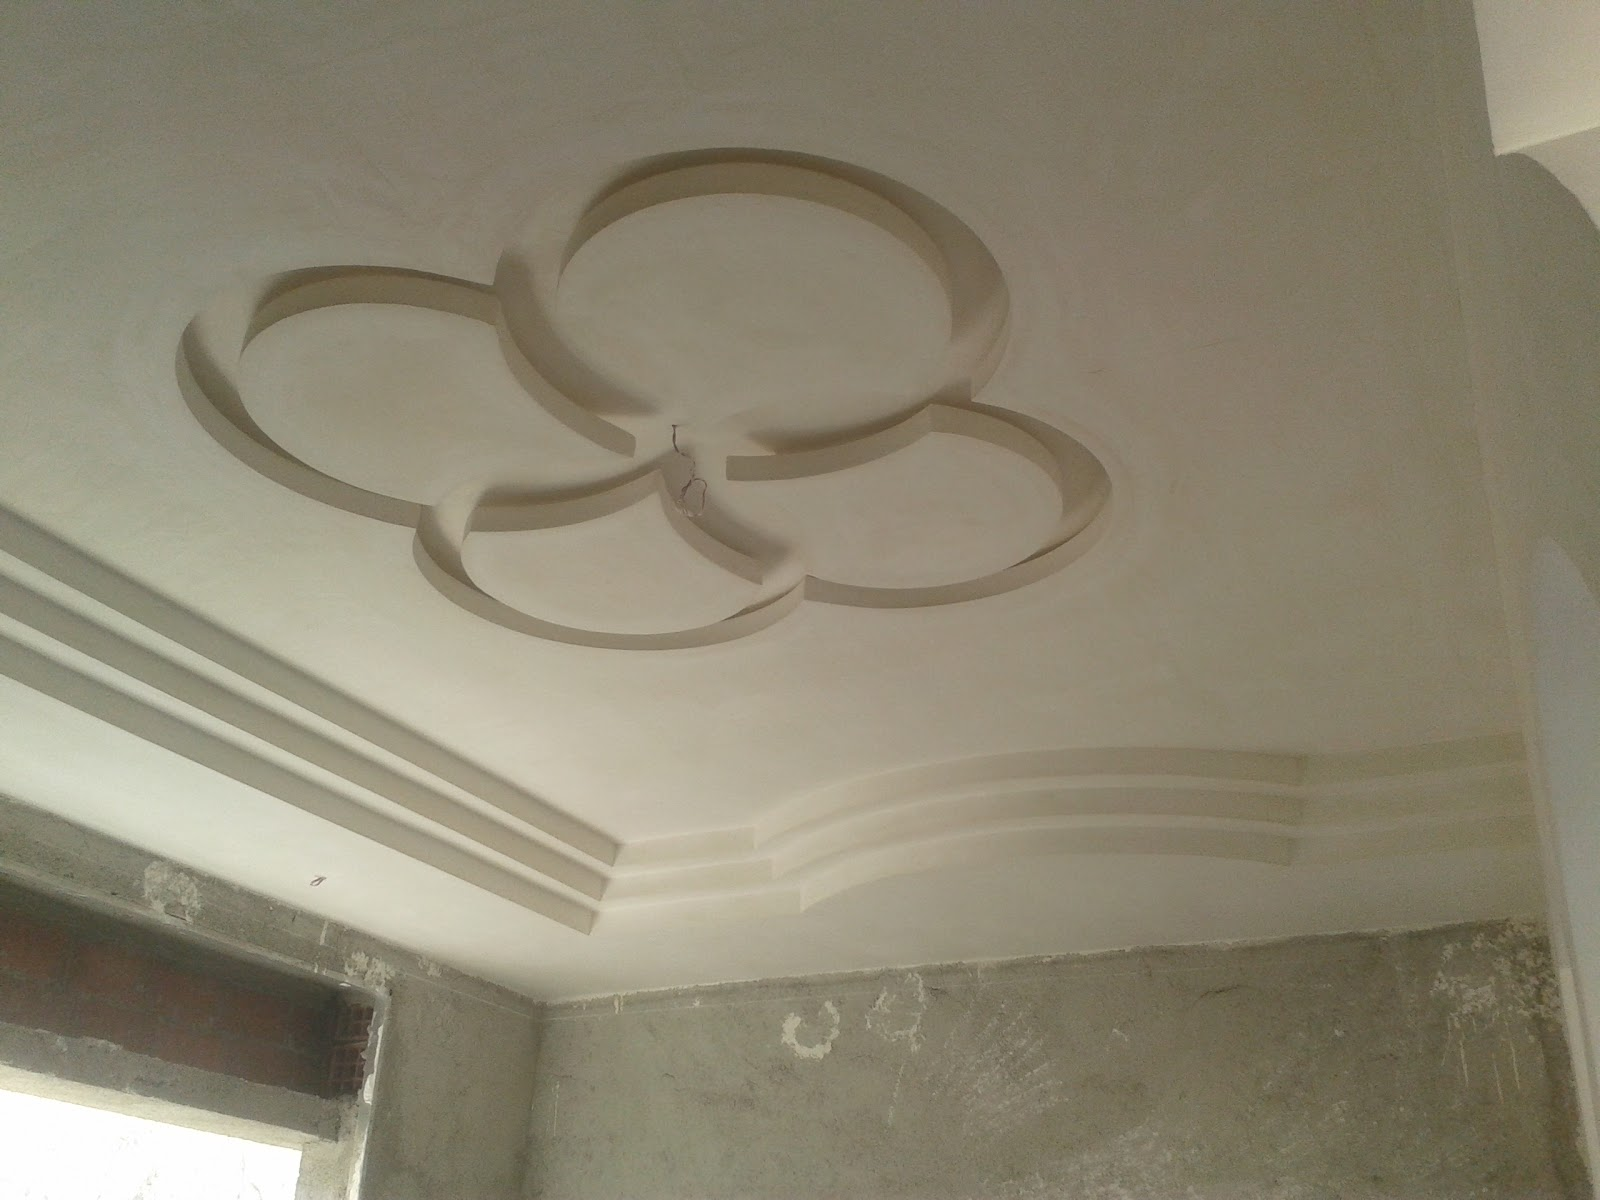 Faux plafond en pl tre pour une salon de meknes ms for Decoration plafond en platre